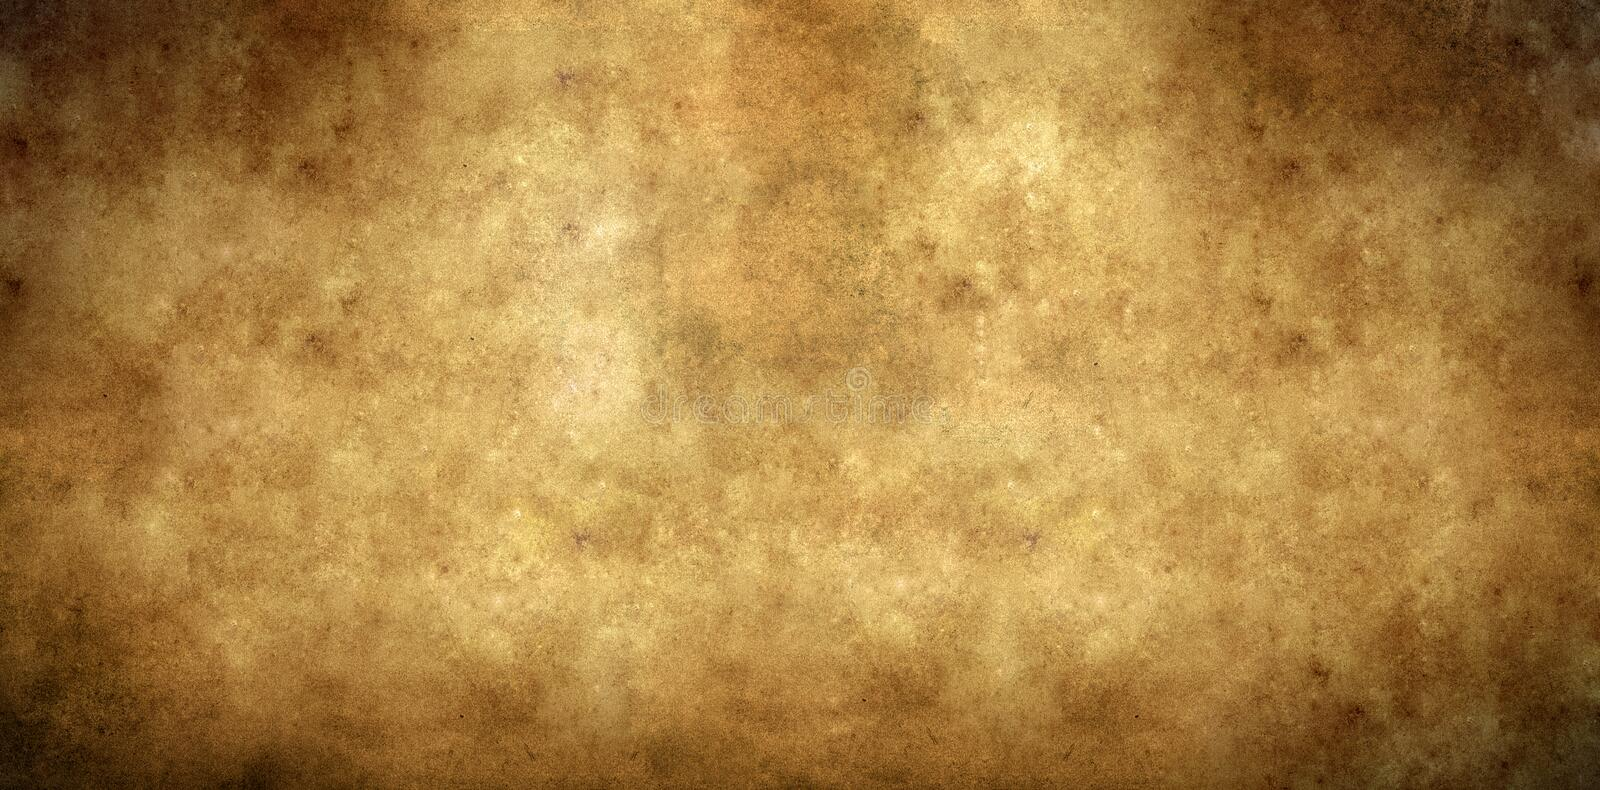 Aged Paper Background Royalty Free Stock Photo